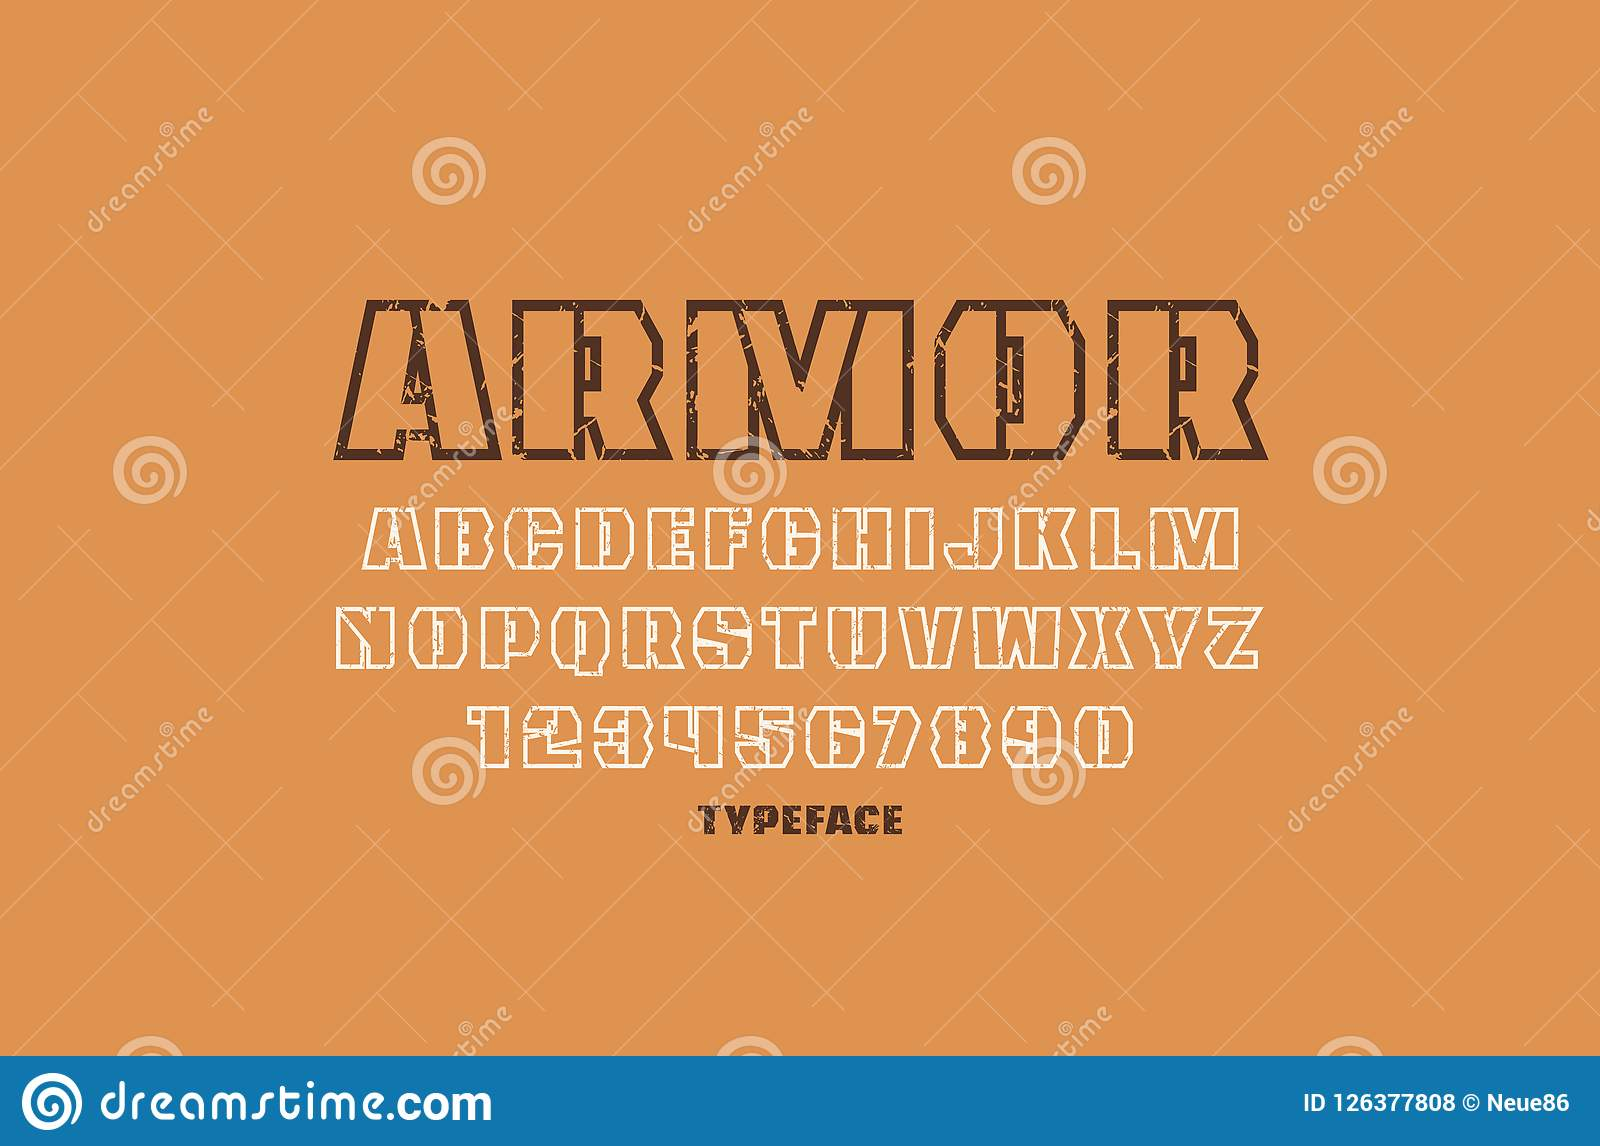 Decorative hollow sans serif font in military style letters and numbers with vintage texture for logo and emblem design